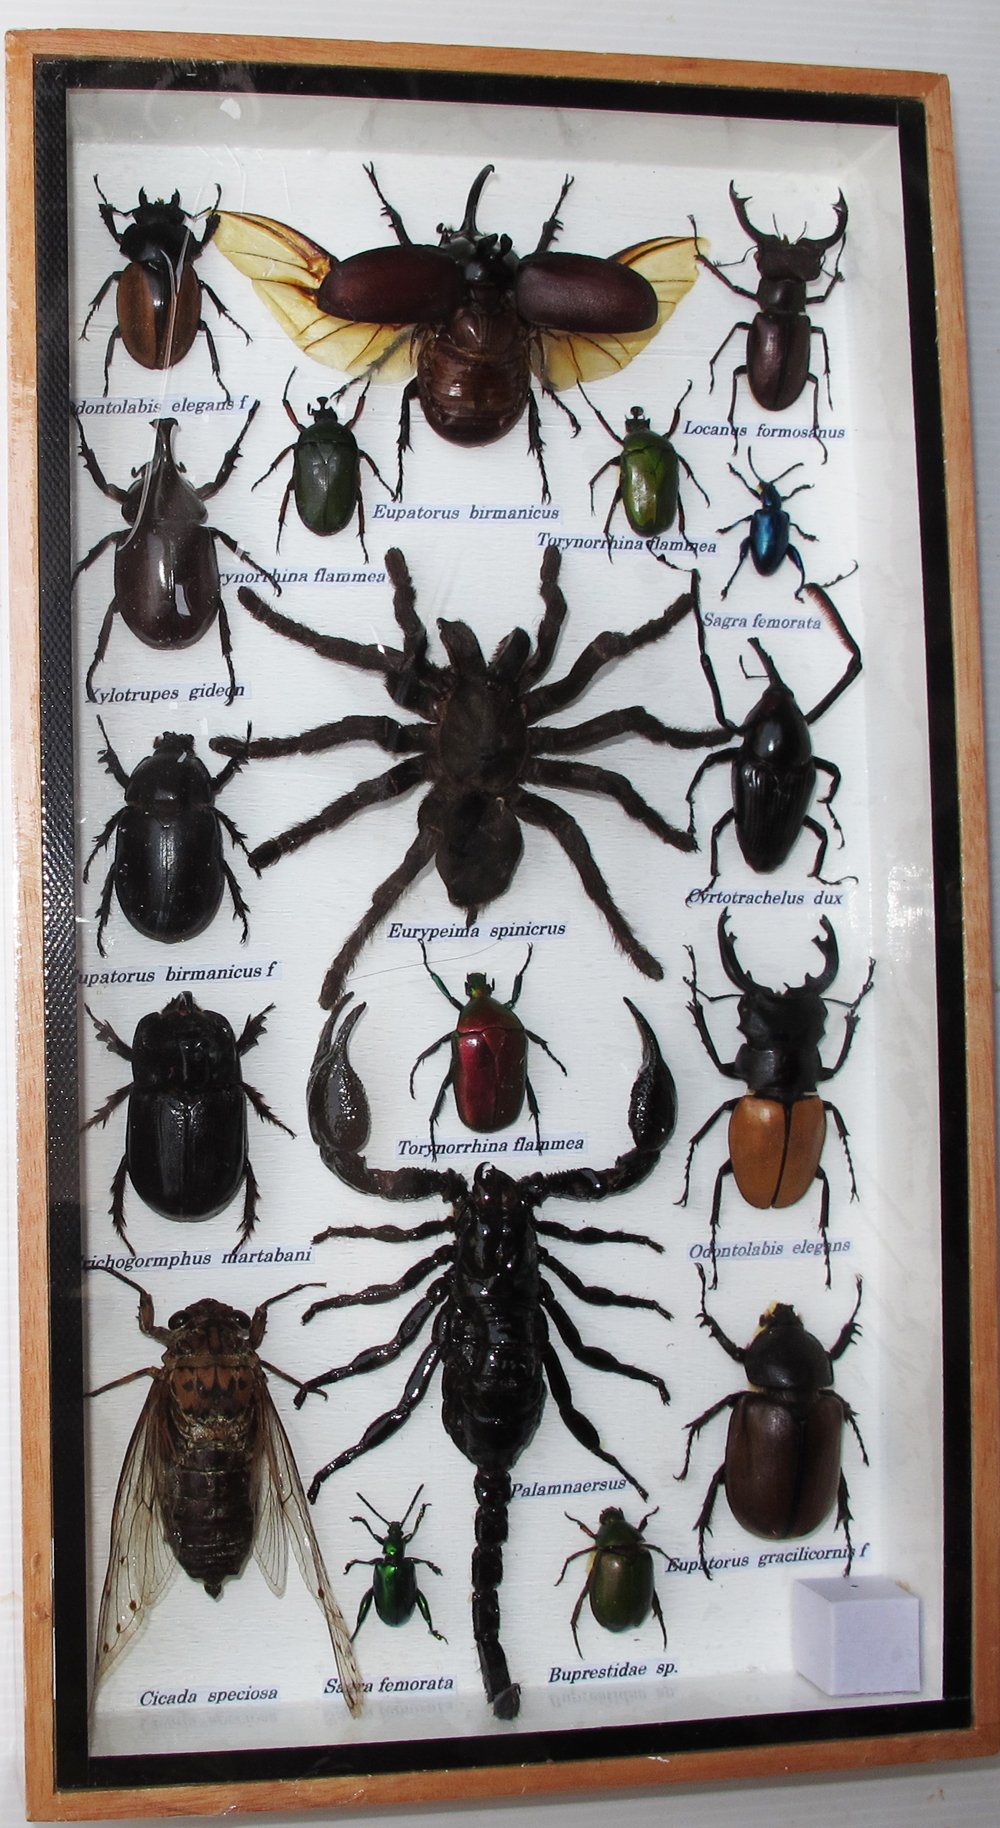 REAL RARE BIG MIXS INSECT TAXIDERMY SET IN BOXES DISPLAY FOR COLLECTIBLES by Thai Decorated